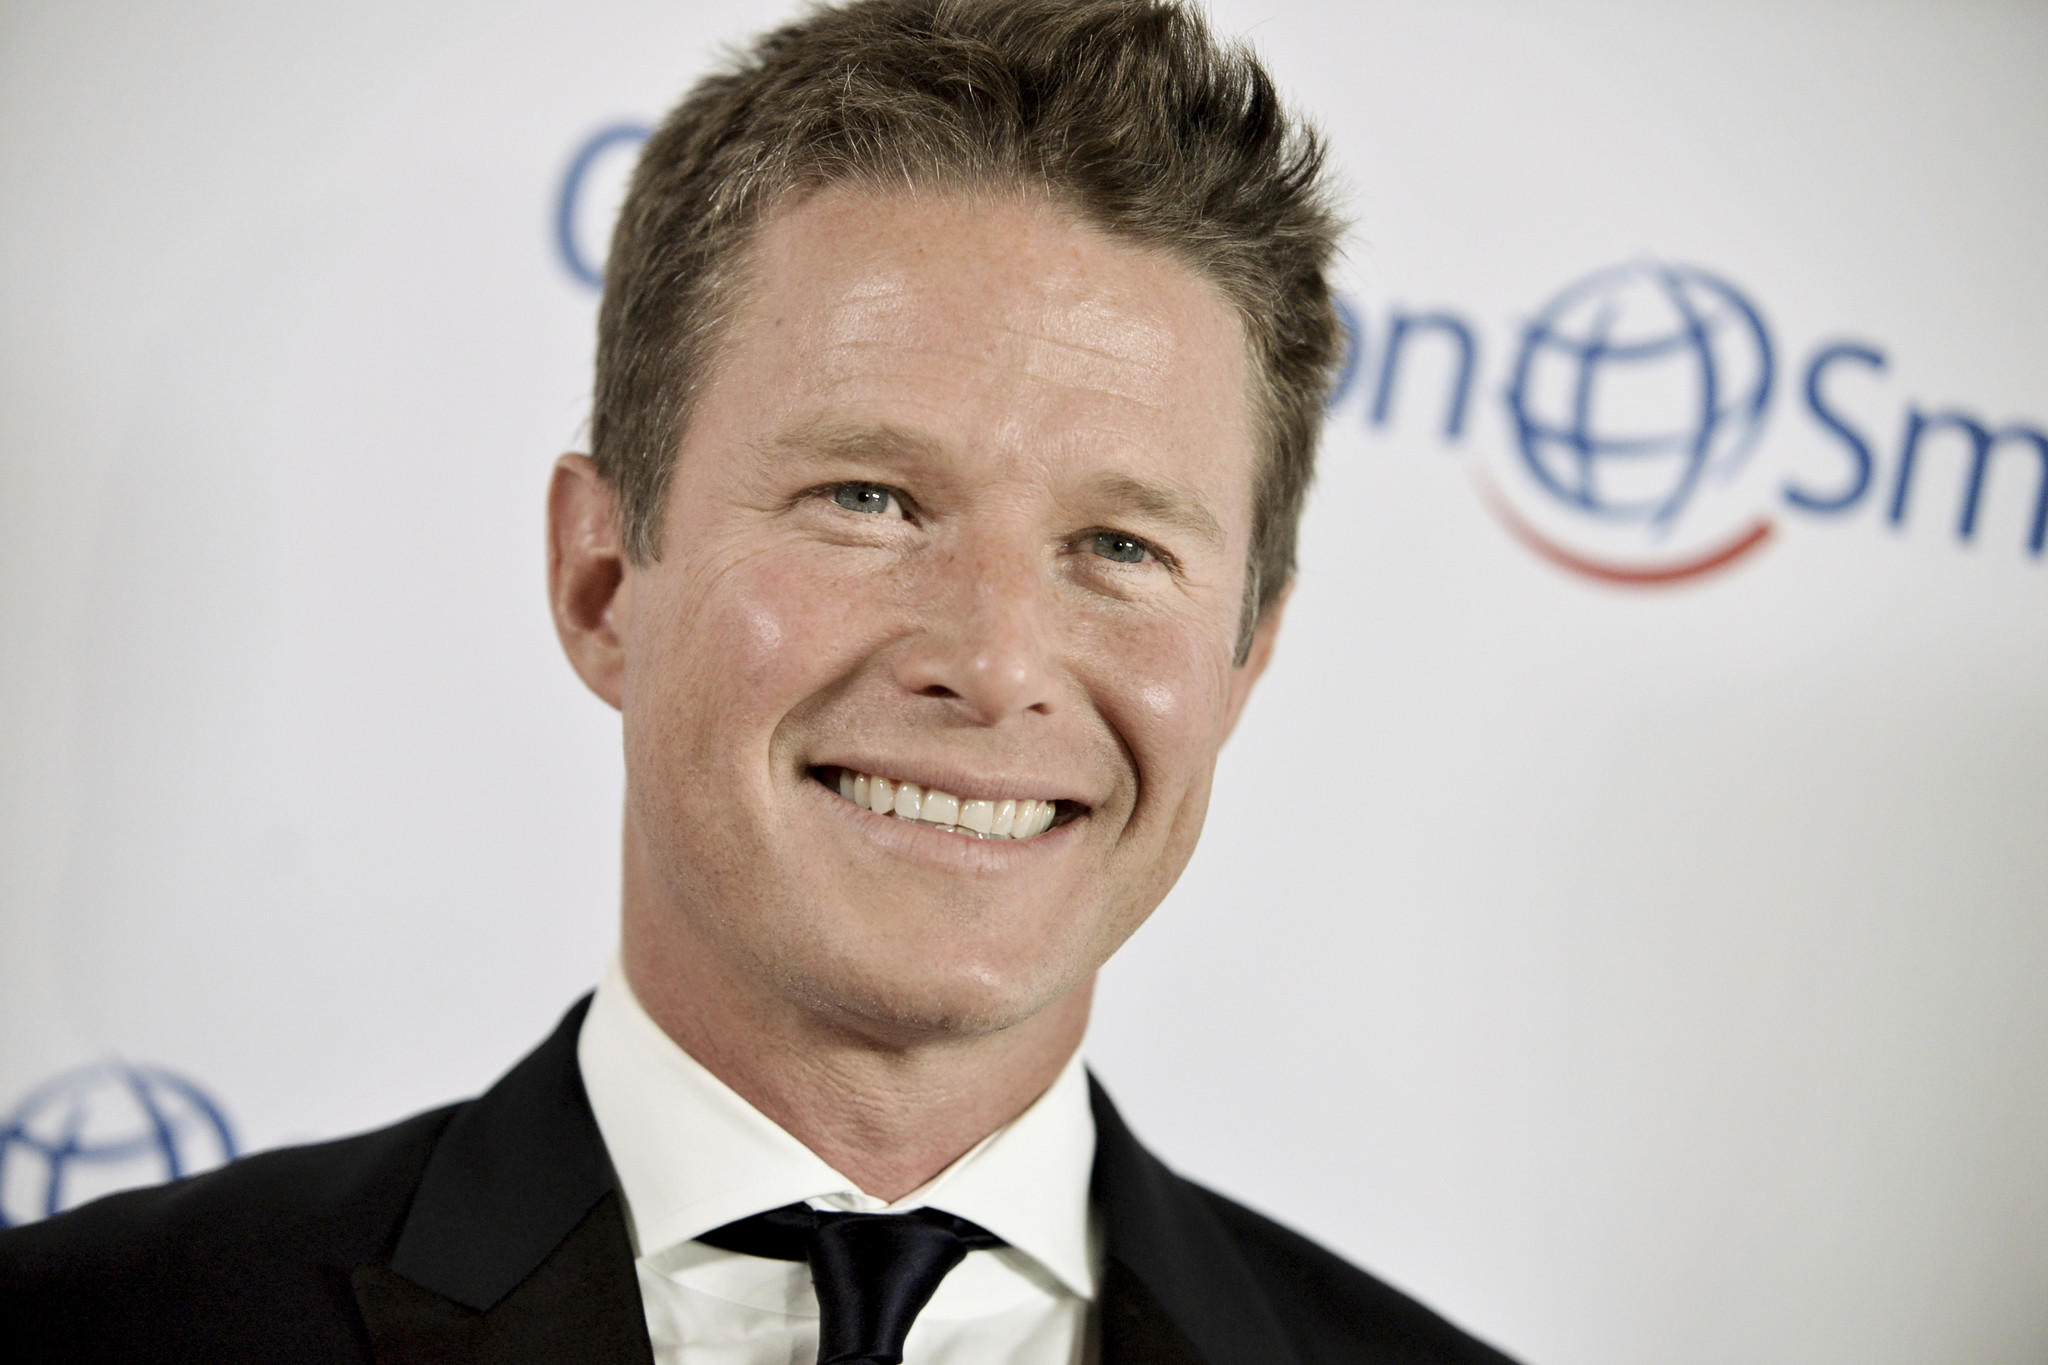 Billy Bush separating from wife after almost 20 years